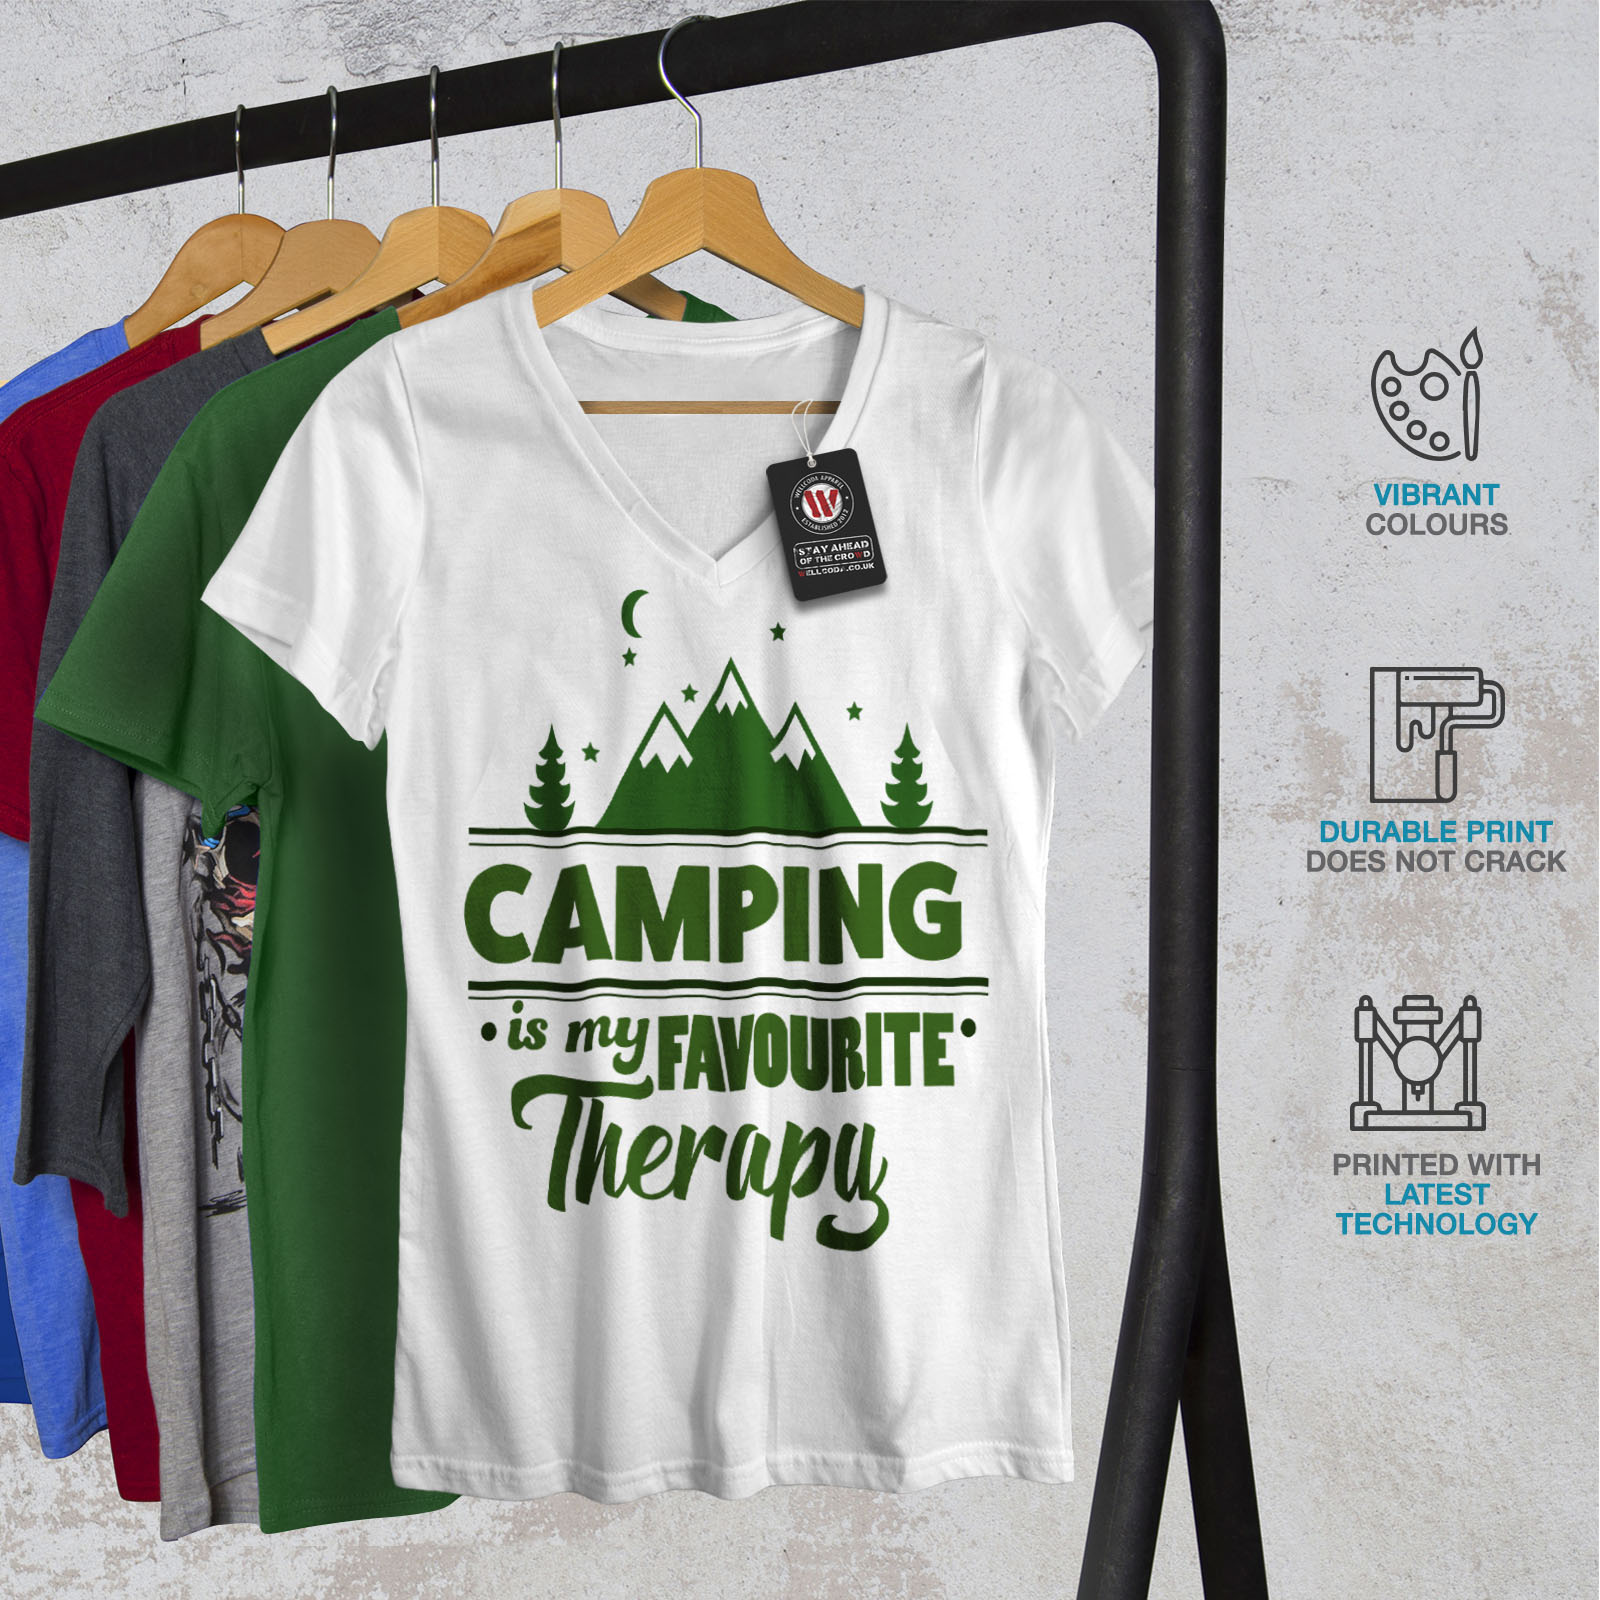 Wellcoda-Camping-Therapy-Womens-V-Neck-T-shirt-Outdoor-Graphic-Design-Tee thumbnail 8